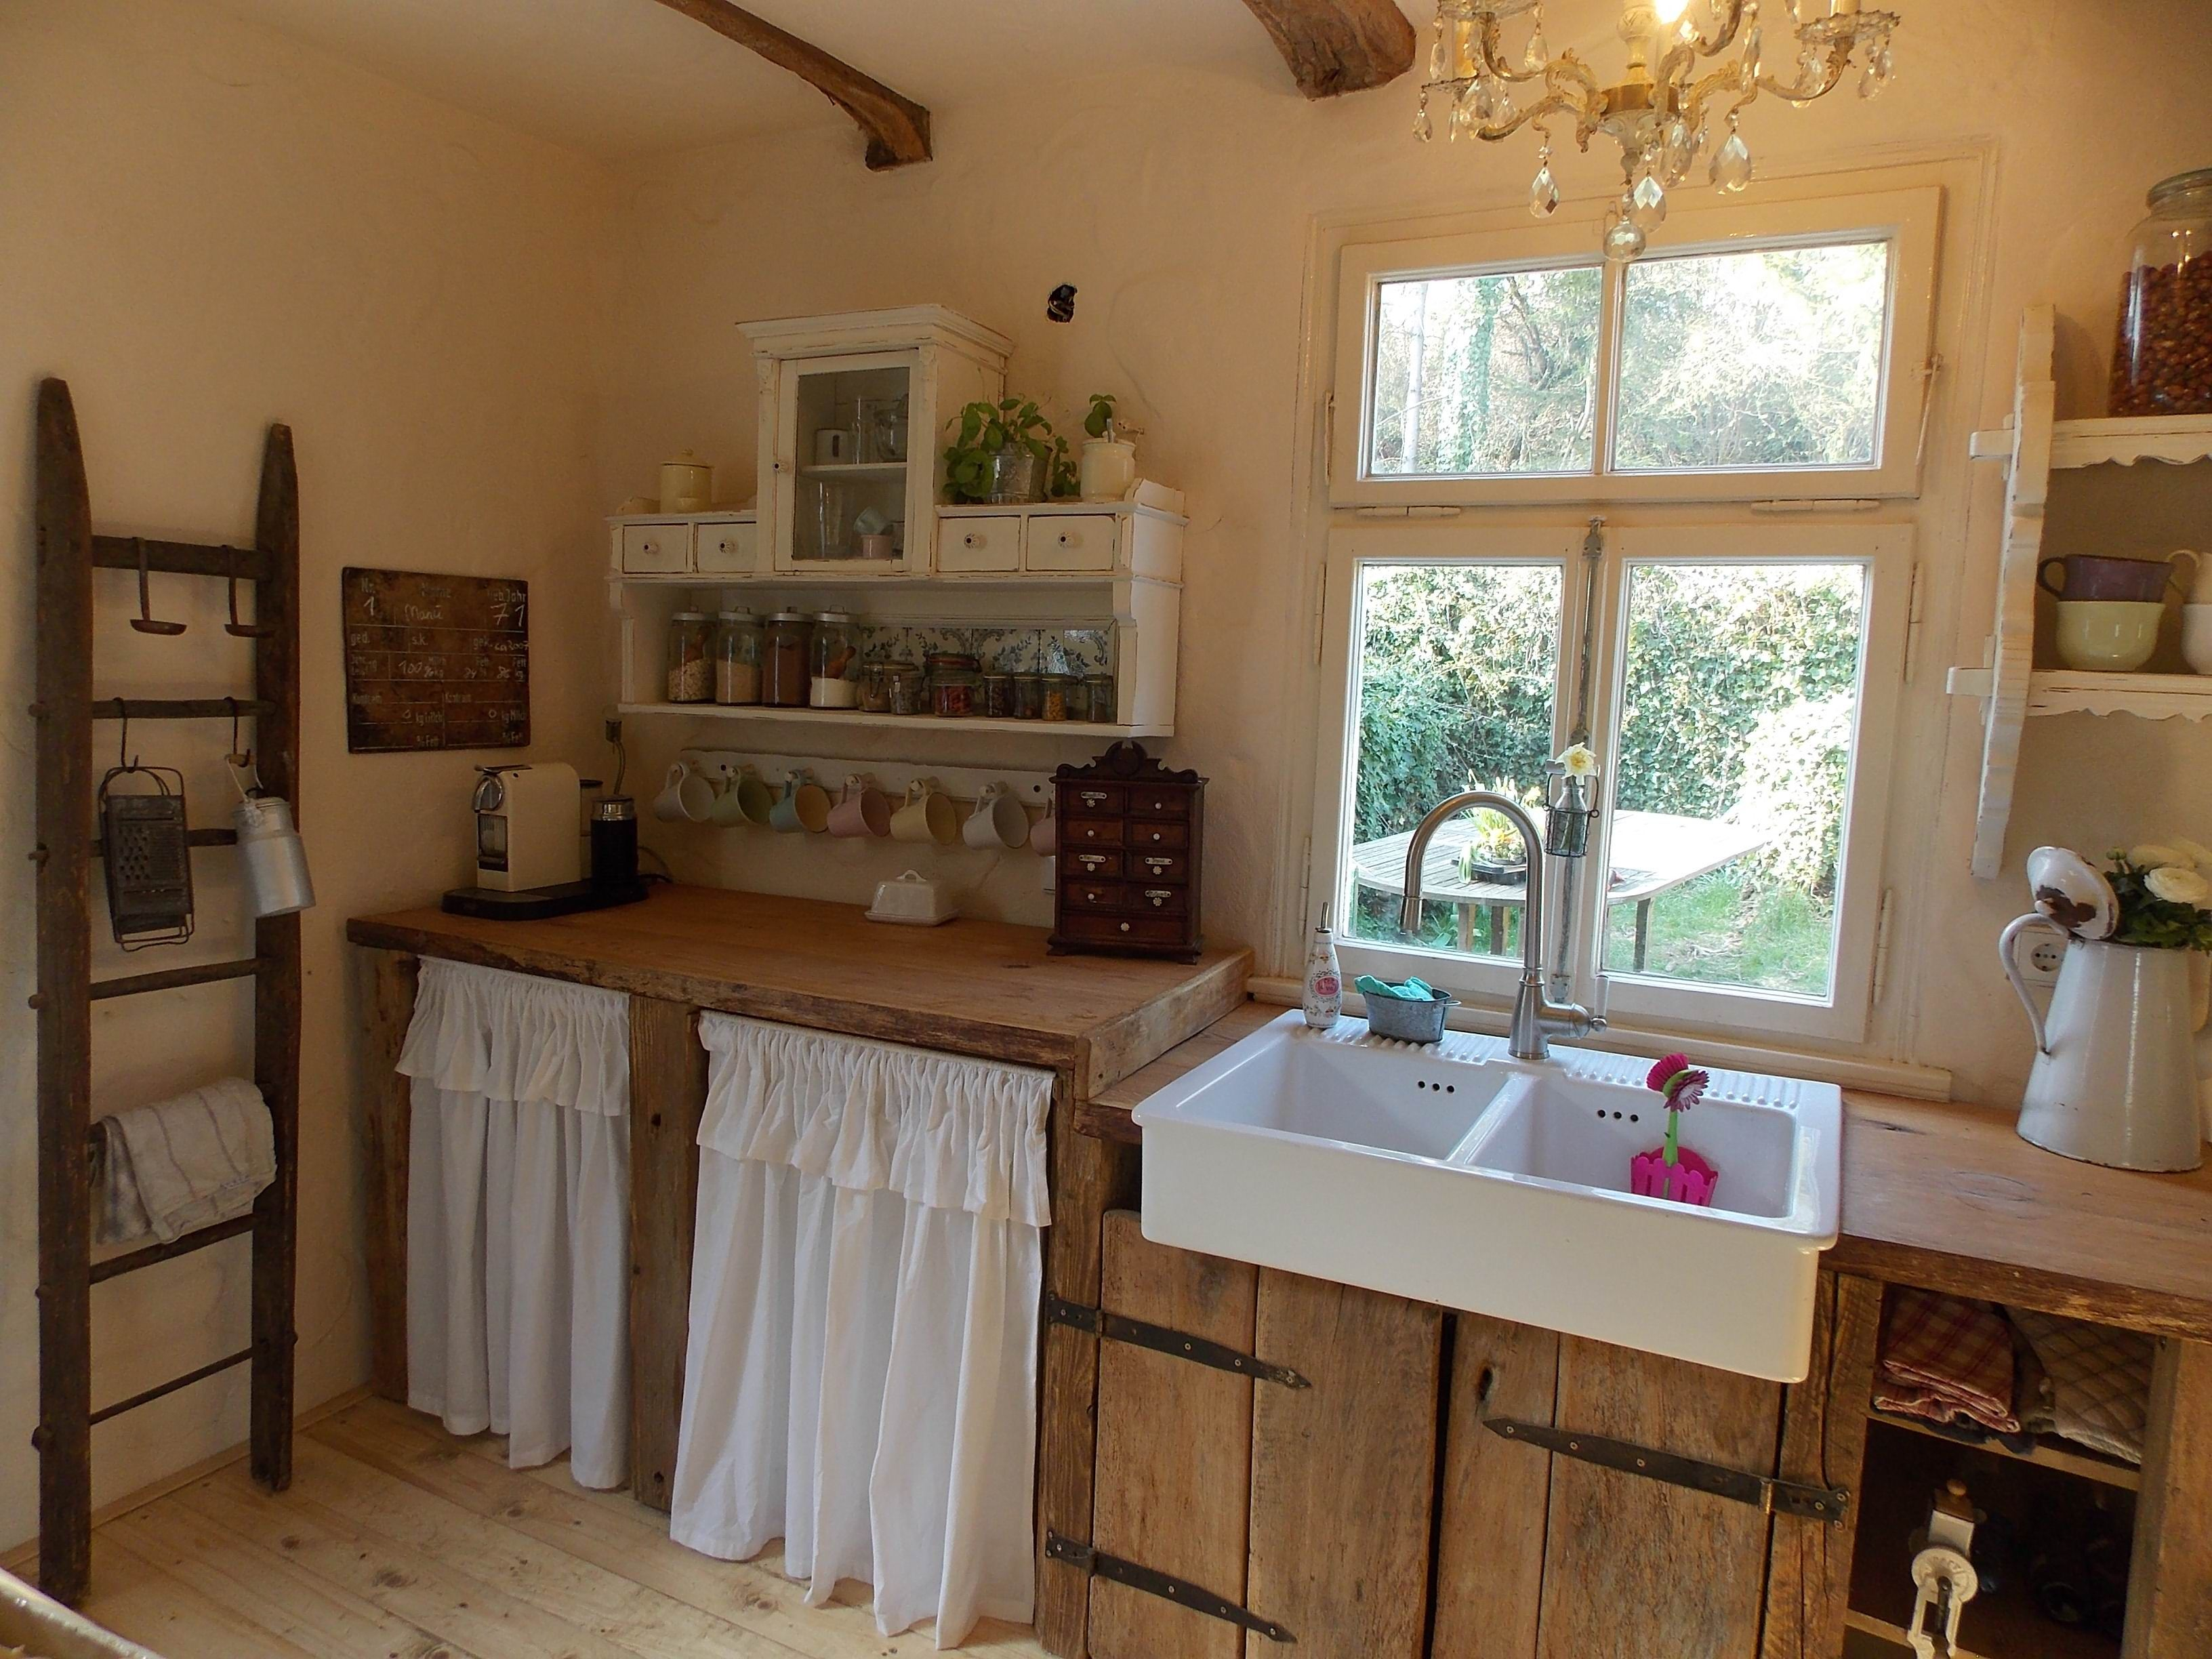 farmhouse kitchen landhaus k che shabby chic altes